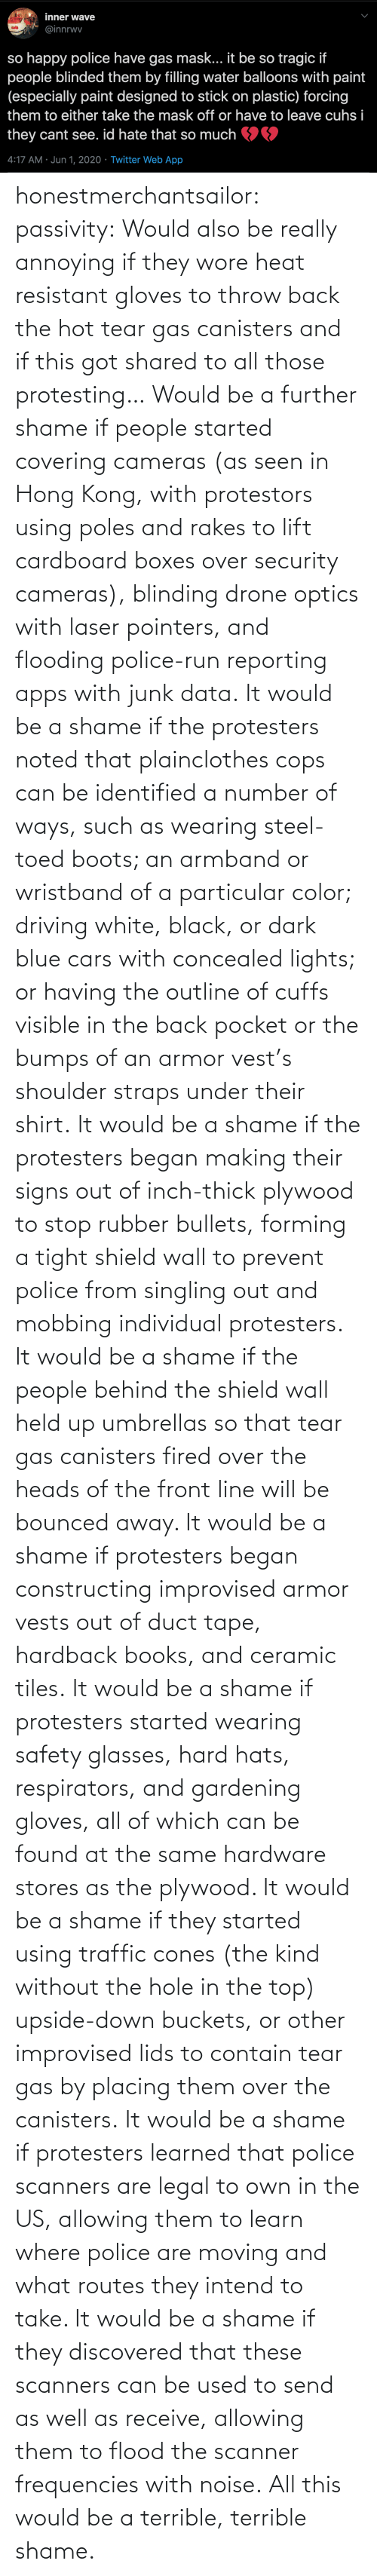 The Day: honestmerchantsailor:  passivity: Would also be really annoying if they wore heat resistant gloves to throw back the hot tear gas canisters and if this got shared to all those protesting… Would be a further shame if people started covering cameras (as seen in Hong Kong, with protestors using poles and rakes to lift cardboard boxes over security cameras), blinding drone optics with laser pointers, and flooding police-run reporting apps with junk data. It would be a shame if the protesters noted that plainclothes cops can be identified a number of ways, such as wearing steel-toed boots; an armband or wristband of a particular color; driving white, black, or dark blue cars with concealed lights; or having the outline of cuffs visible in the back pocket or the bumps of an armor vest's shoulder straps under their shirt. It would be a shame if the protesters began making their signs out of inch-thick plywood to stop rubber bullets, forming a tight shield wall to prevent police from singling out and mobbing individual protesters. It would be a shame if the people behind the shield wall held up umbrellas so that tear gas canisters fired over the heads of the front line will be bounced away. It would be a shame if protesters began constructing improvised armor vests out of duct tape, hardback books, and ceramic tiles. It would be a shame if protesters started wearing safety glasses, hard hats, respirators, and gardening gloves, all of which can be found at the same hardware stores as the plywood. It would be a shame if they started using traffic cones (the kind without the hole in the top) upside-down buckets, or other improvised lids to contain tear gas by placing them over the canisters. It would be a shame if protesters learned that police scanners are legal to own in the US, allowing them to learn where police are moving and what routes they intend to take. It would be a shame if they discovered that these scanners can be used to send as well as receive, allowing them to flood the scanner frequencies with noise. All this would be a terrible, terrible shame.